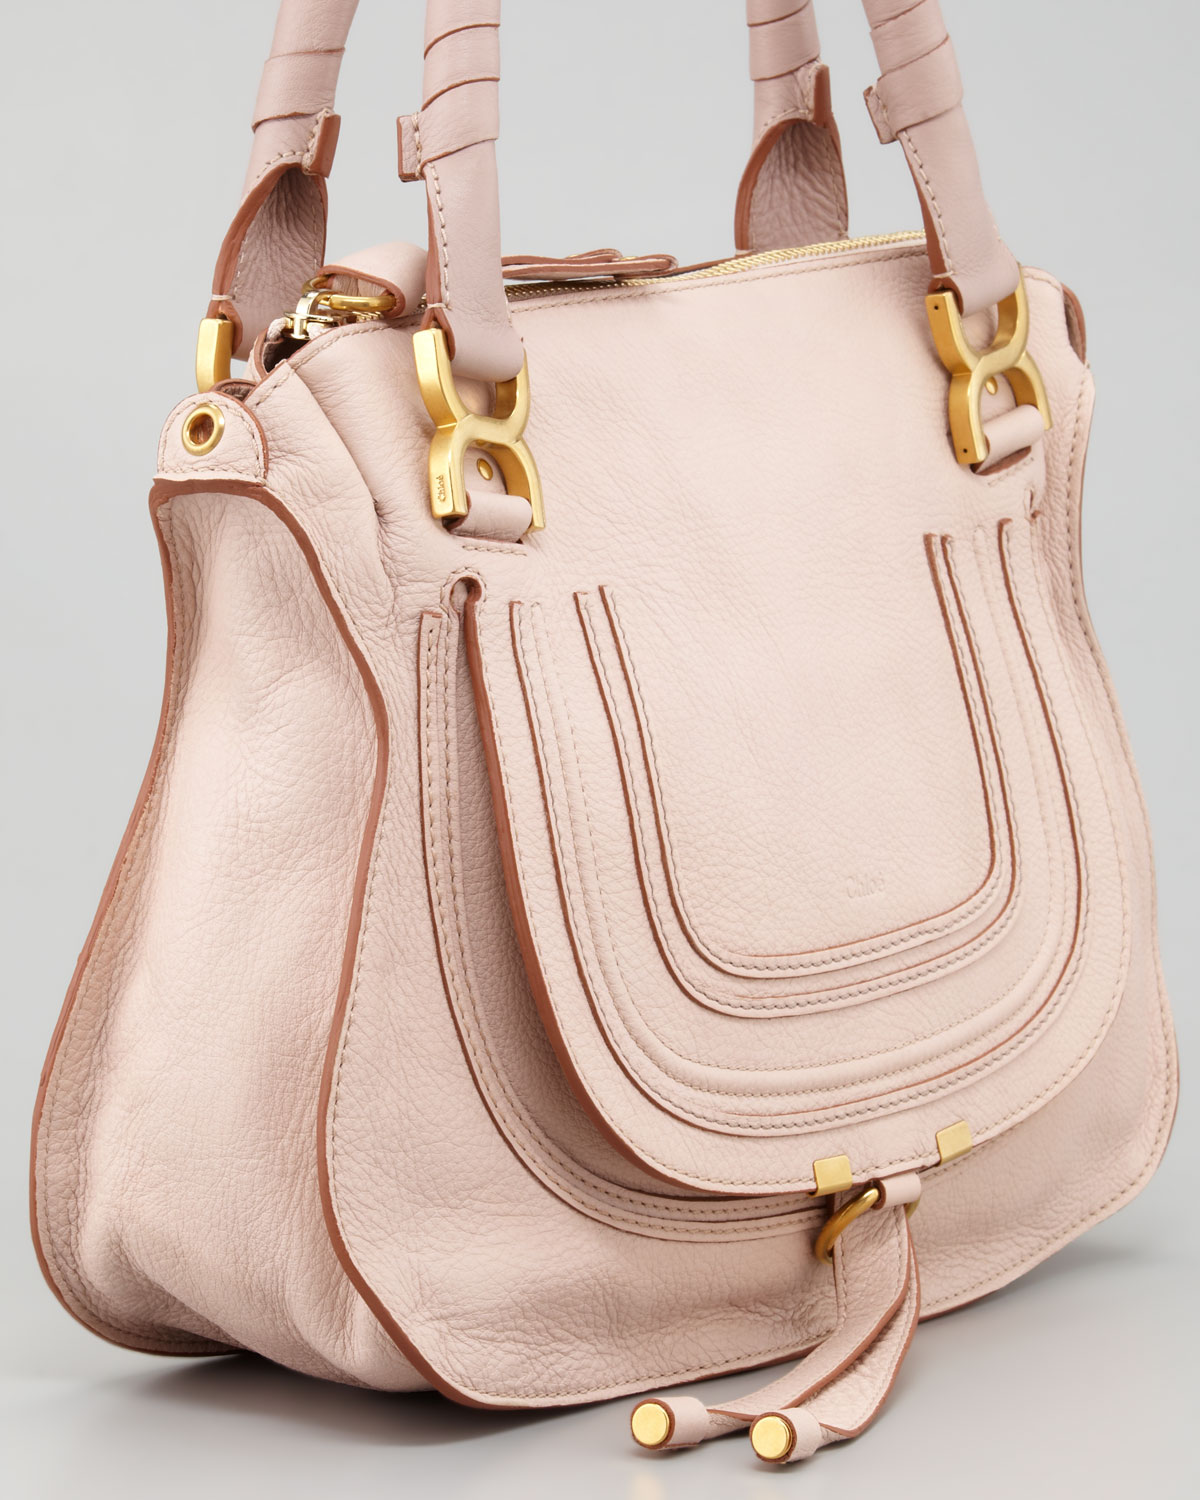 8ed41e022 Gallery. Previously sold at: Neiman Marcus · Women's Chloe Marcie